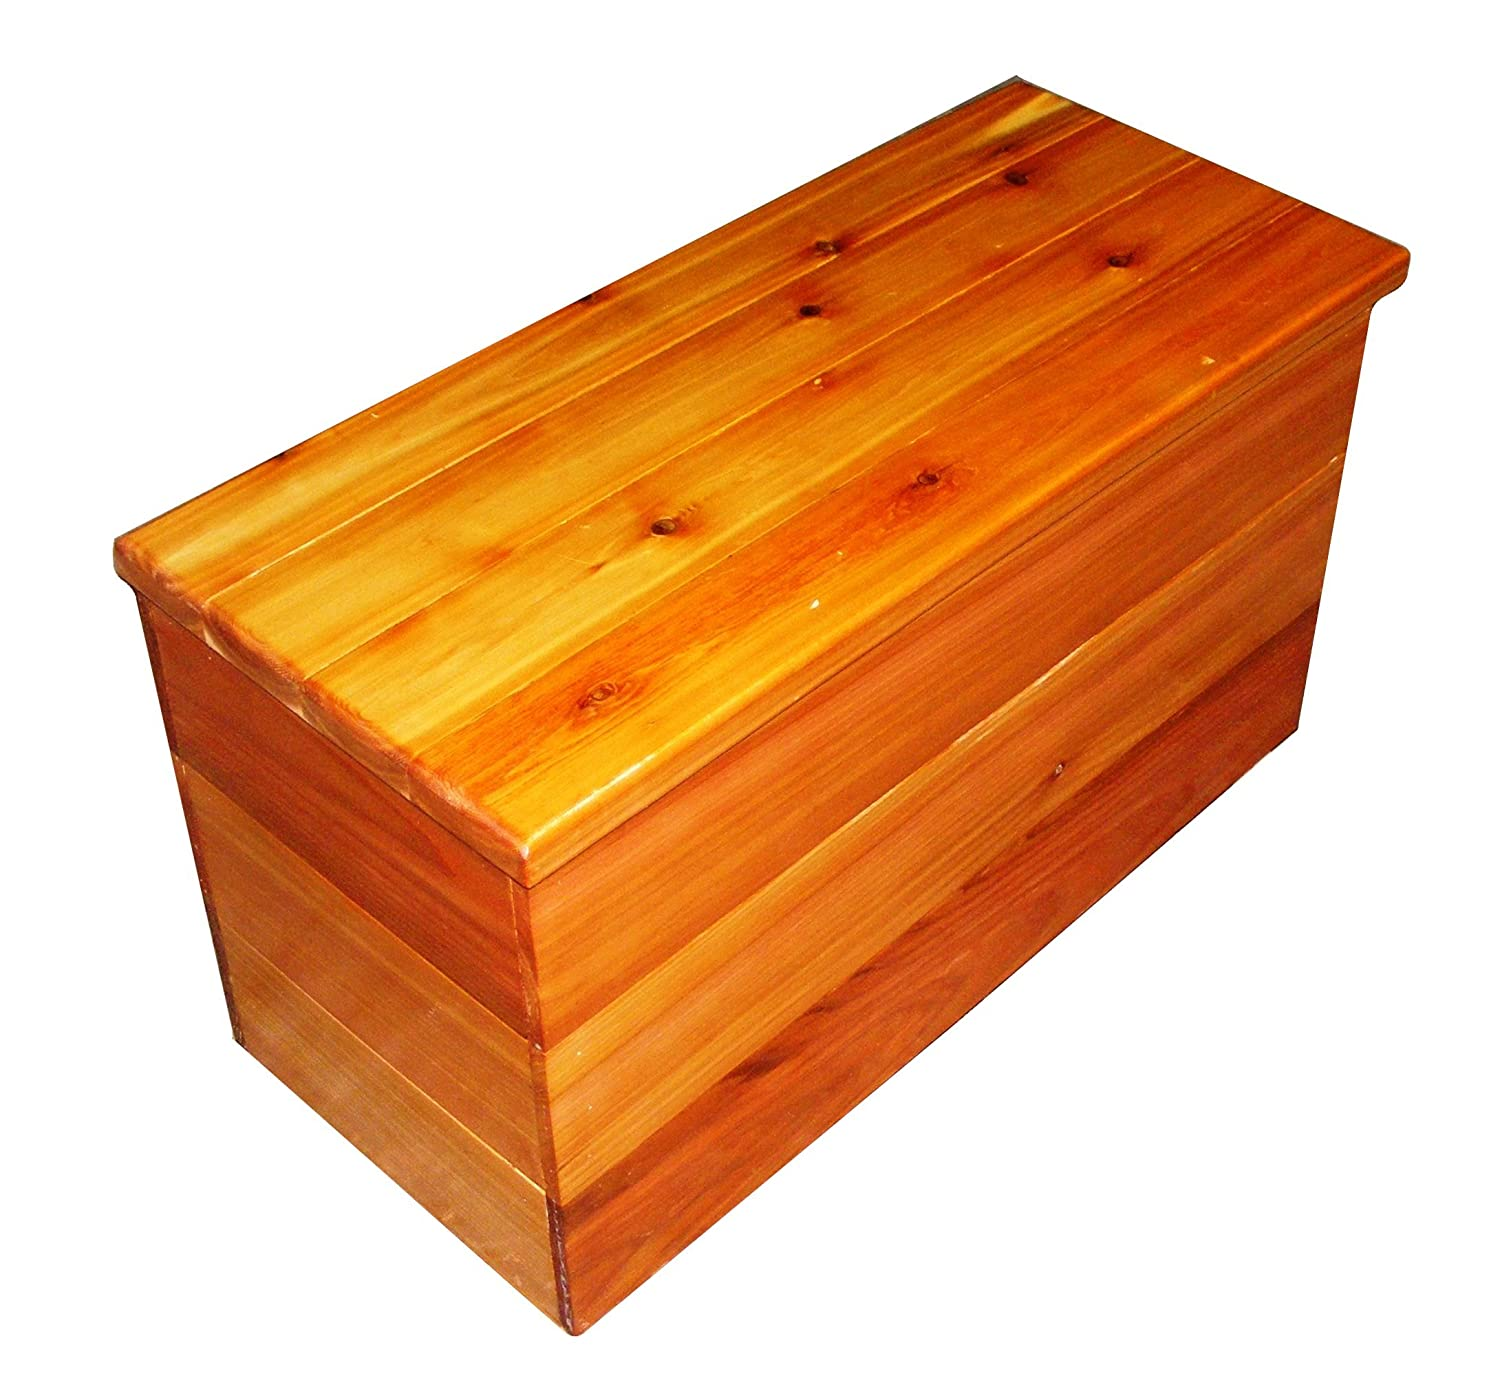 Steve s Gift Shoppe Cedar Chest and Storage Bench Size 30 x 19 x 13 inches